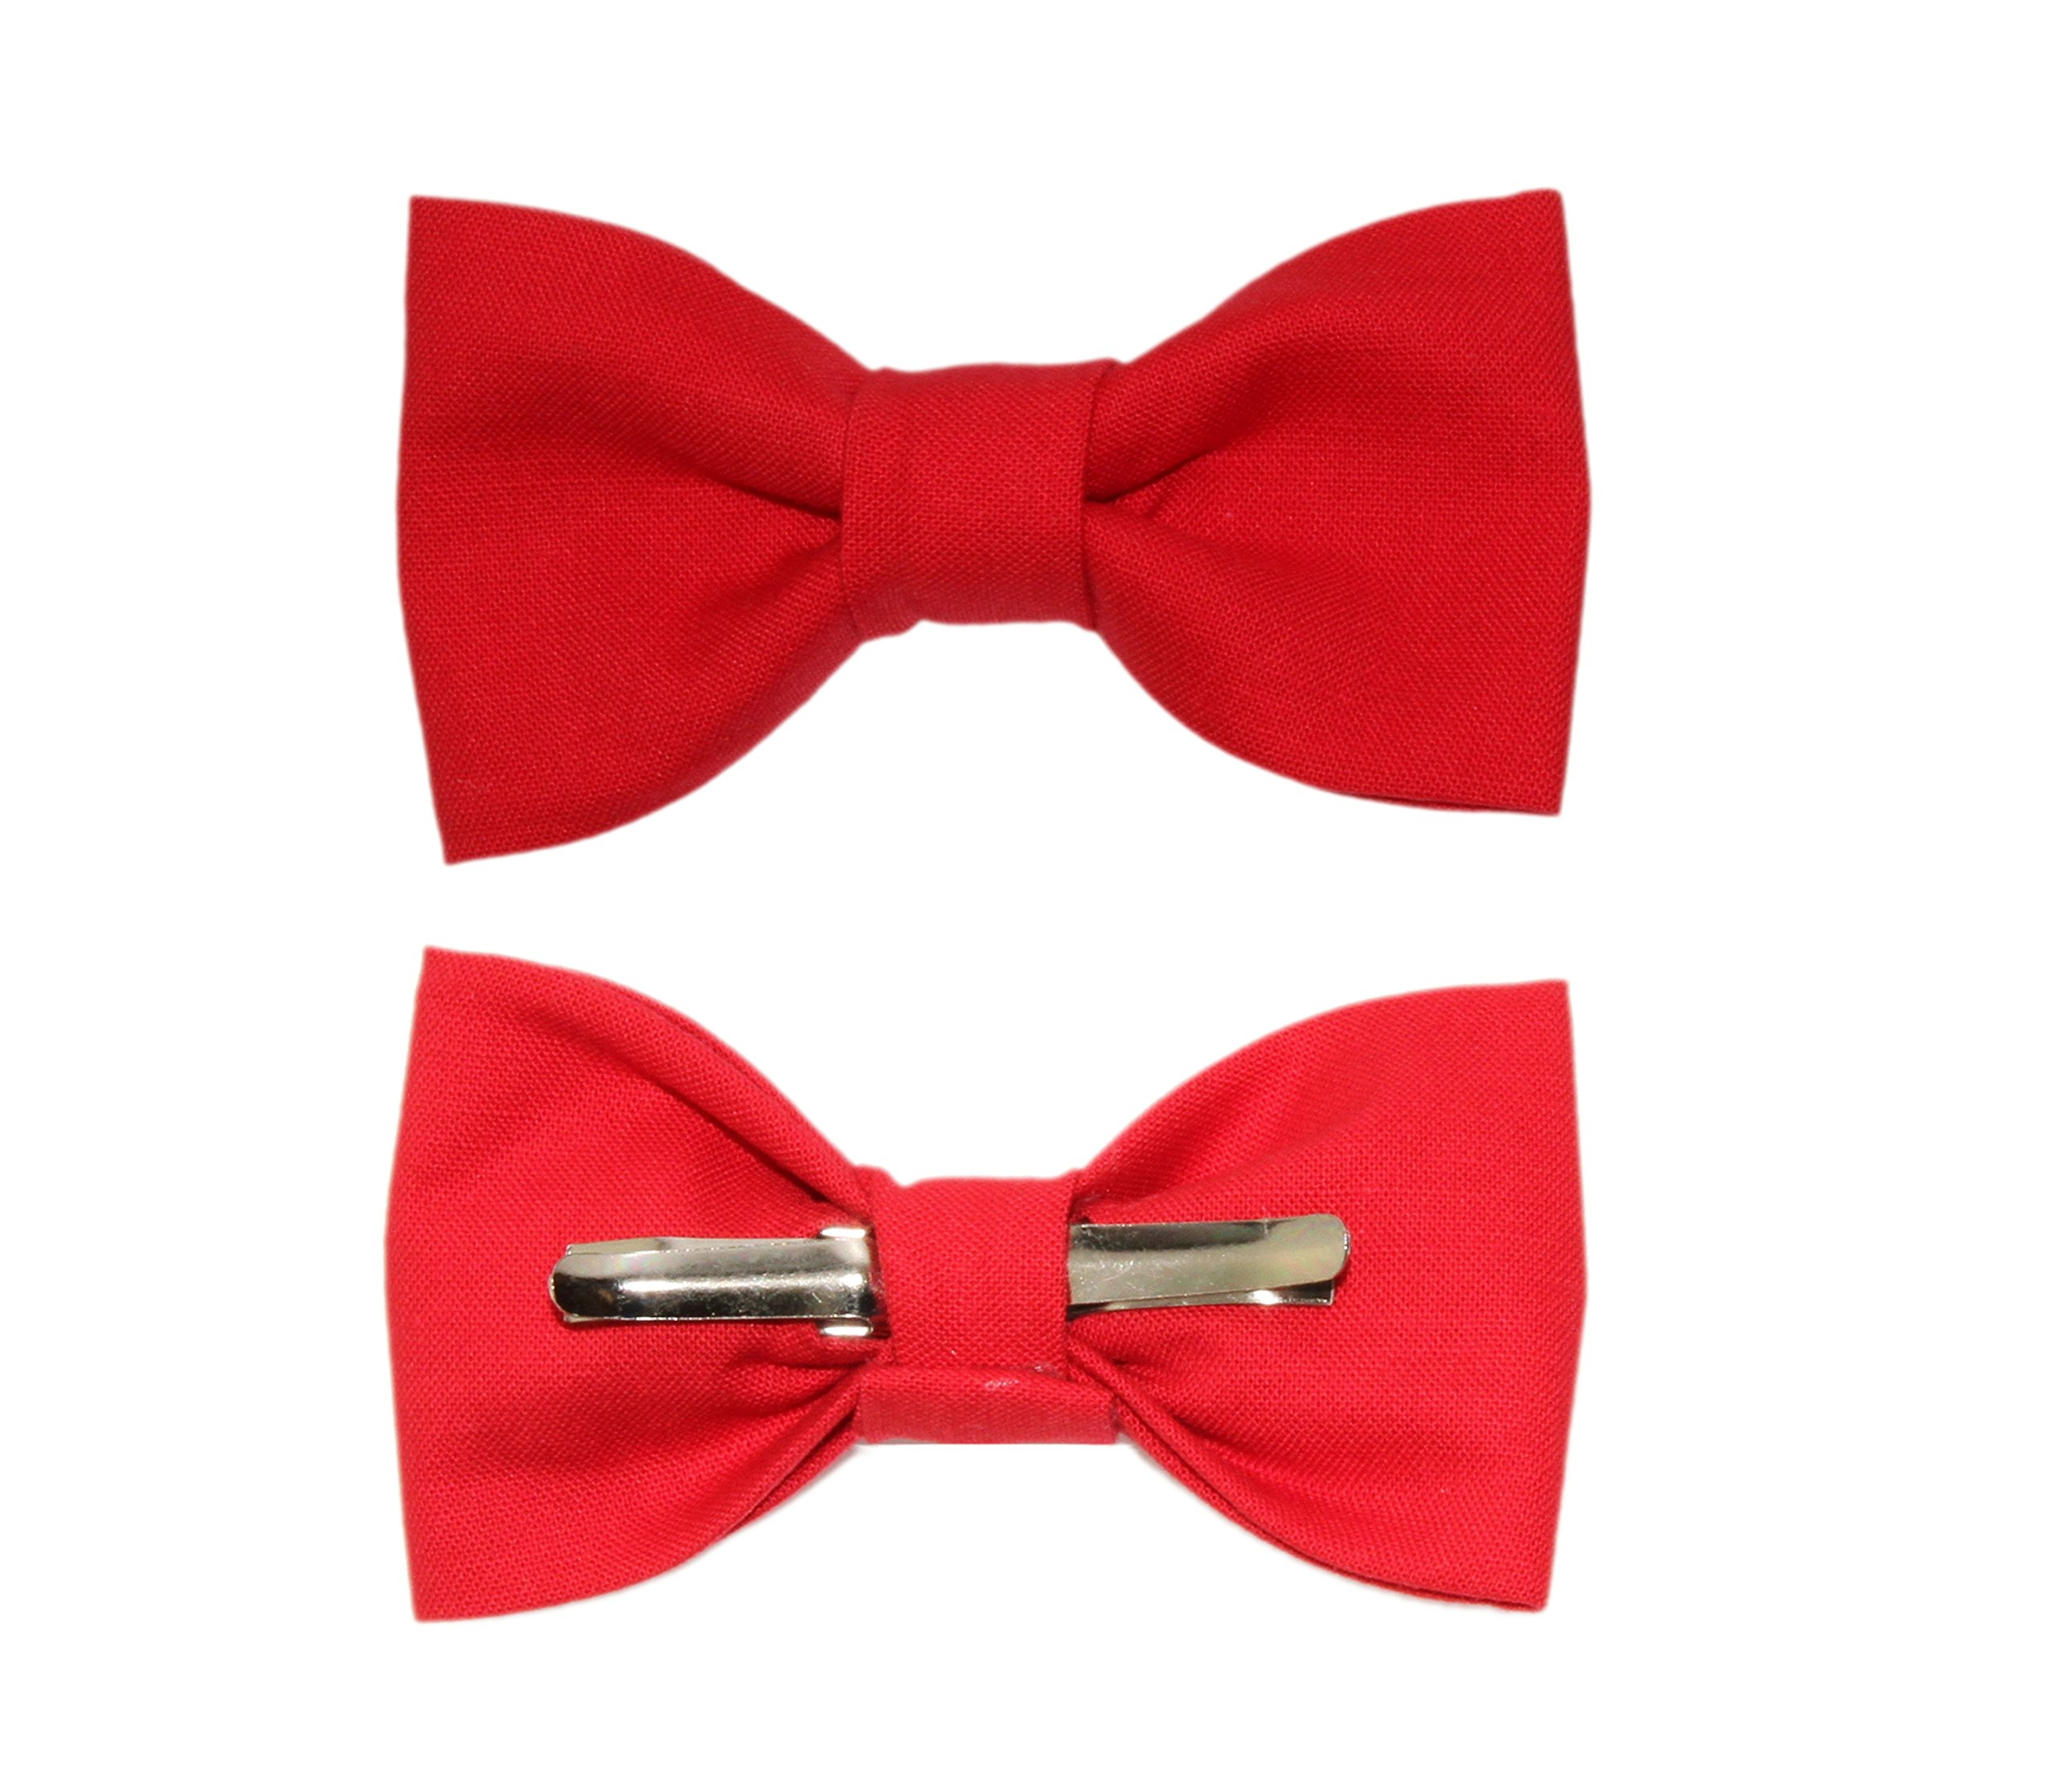 Toddler Boy 4T 5T Solid Red Clip On Cotton Bow Tie Bowtie by amy2004marie